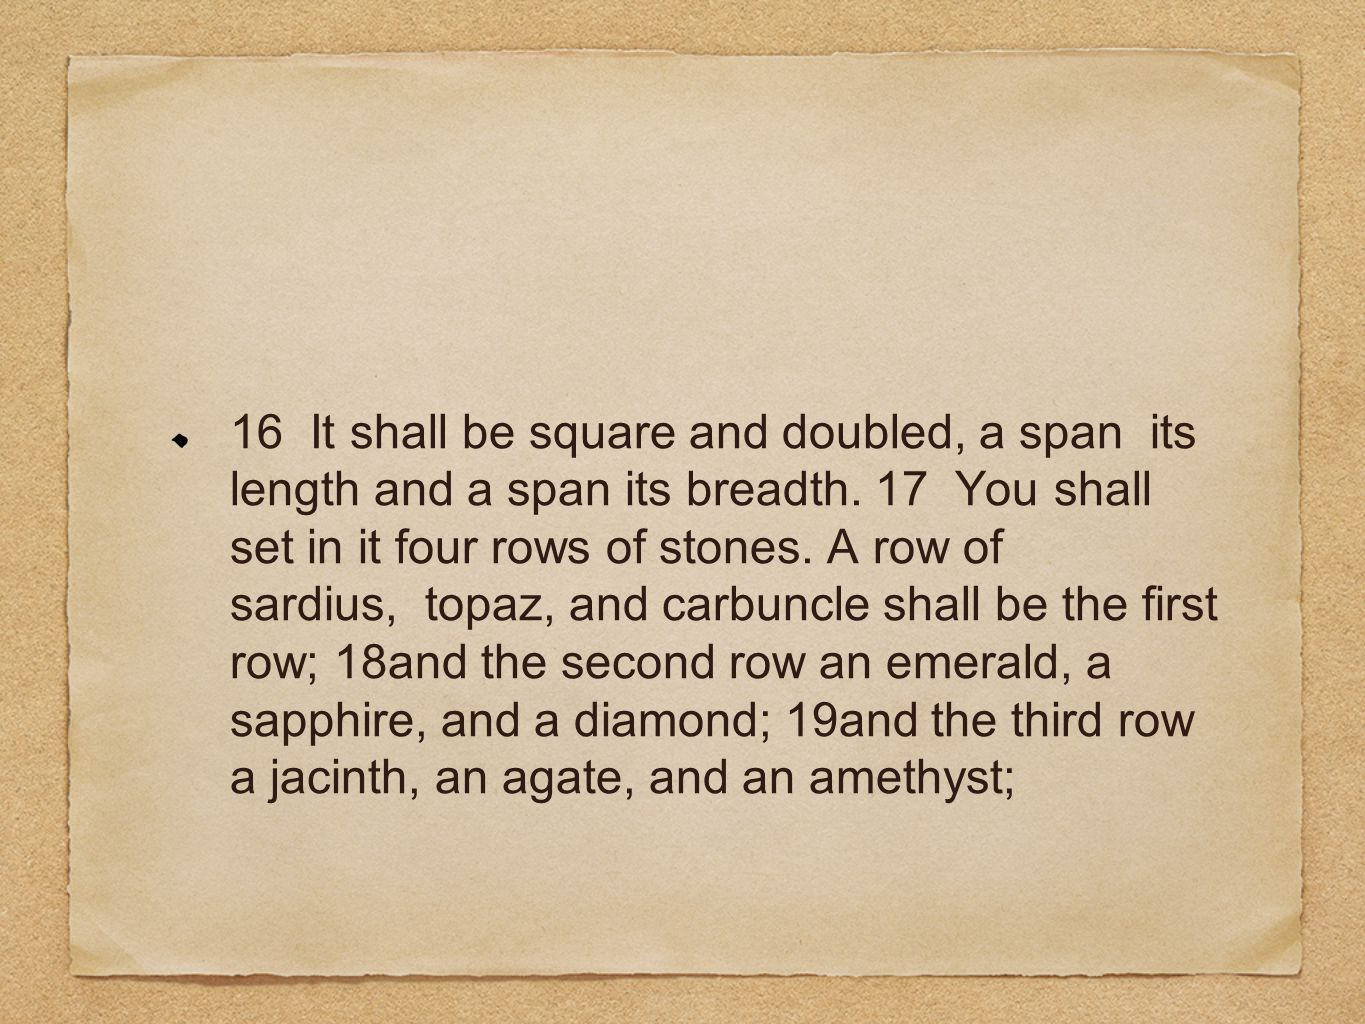 16 It shall be square and doubled, a span its length and a span its breadth.